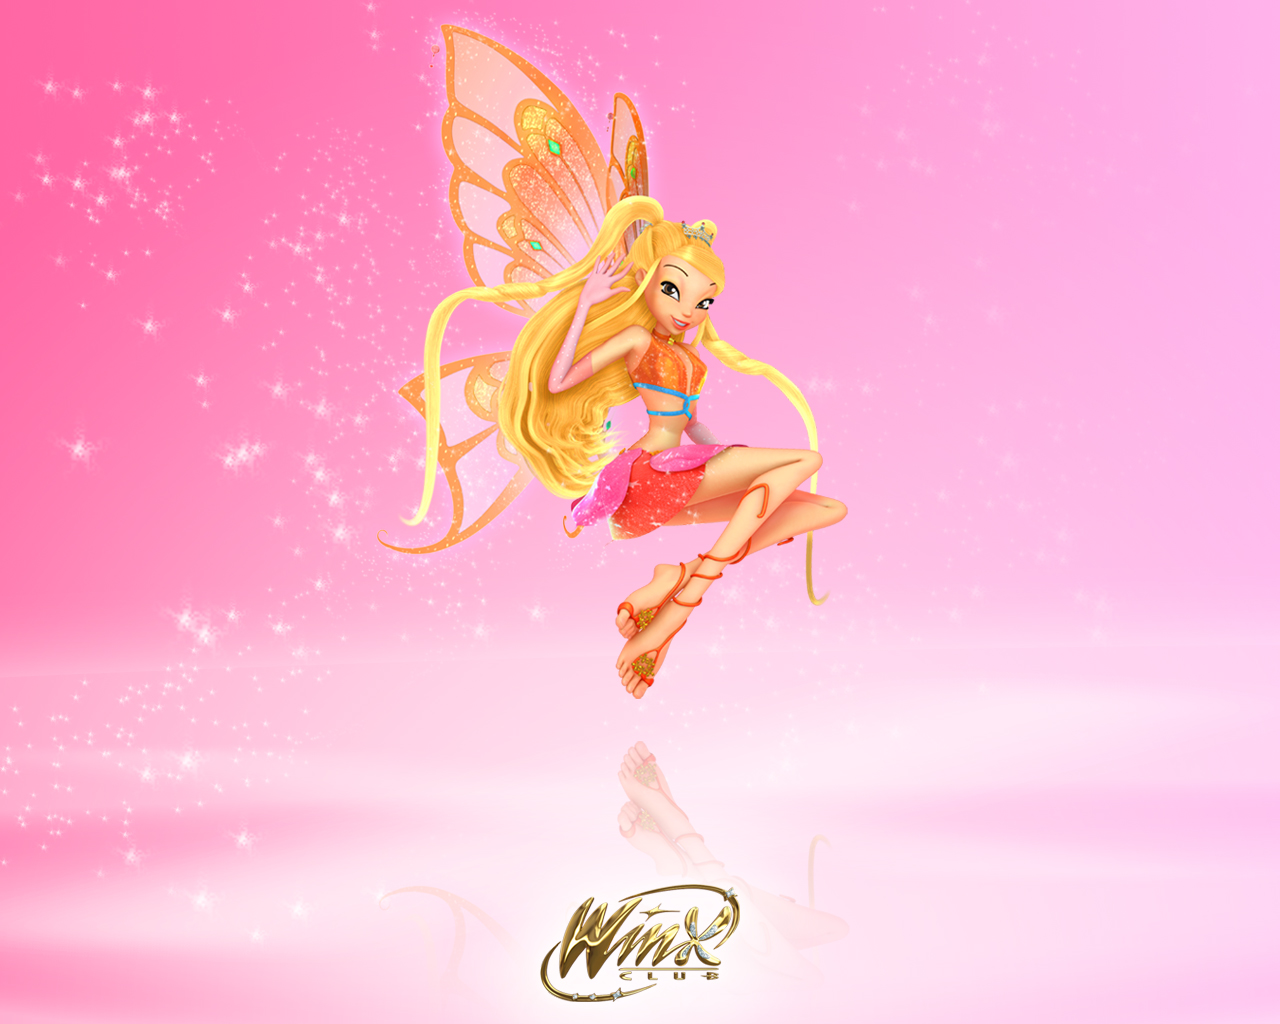 winx club free desktop wallpapers for hd widescreen and